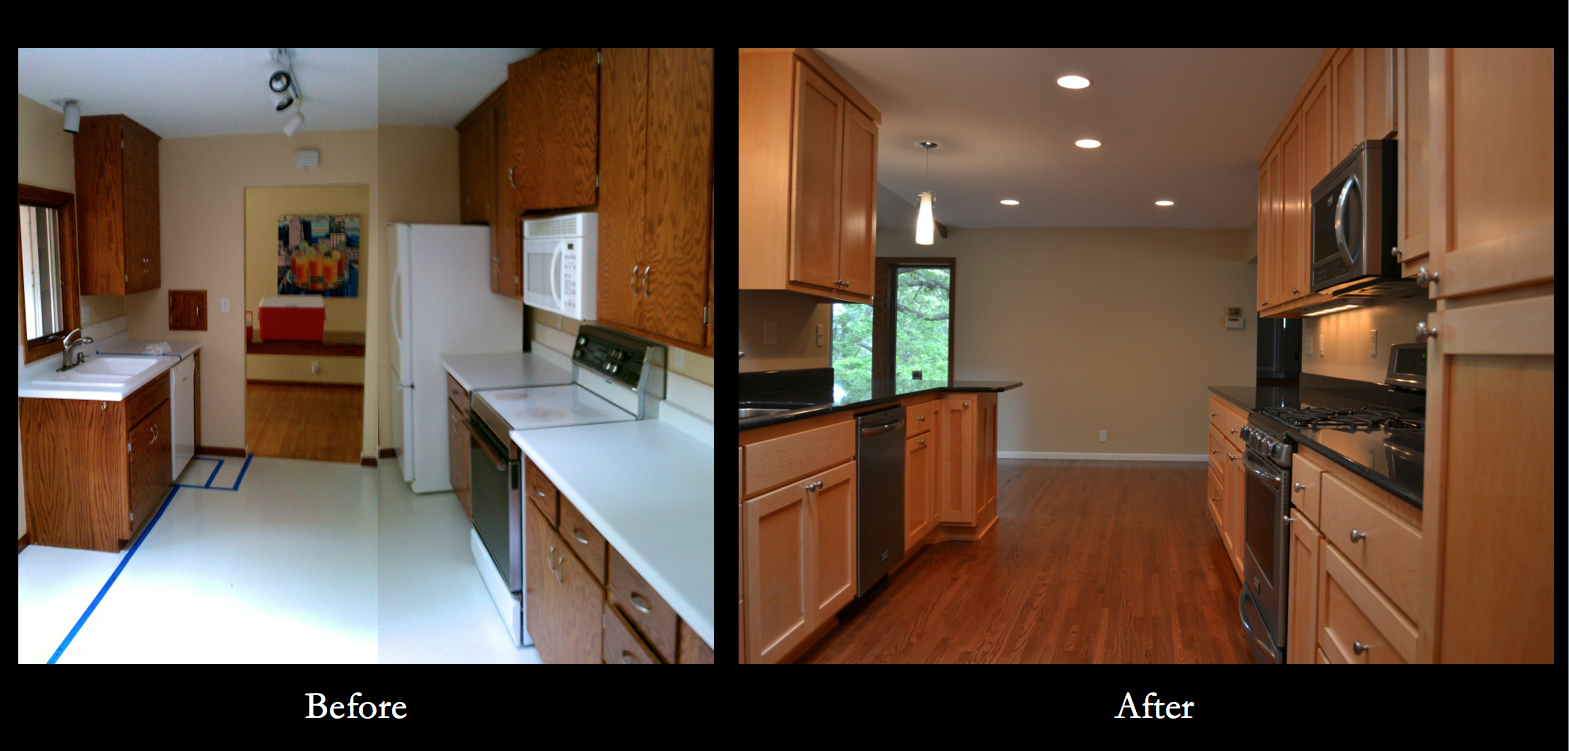 Kitchen Remodel Before And After Wall Removal Small Kitchen Remodels Before After  Kitchen Remodel Before And